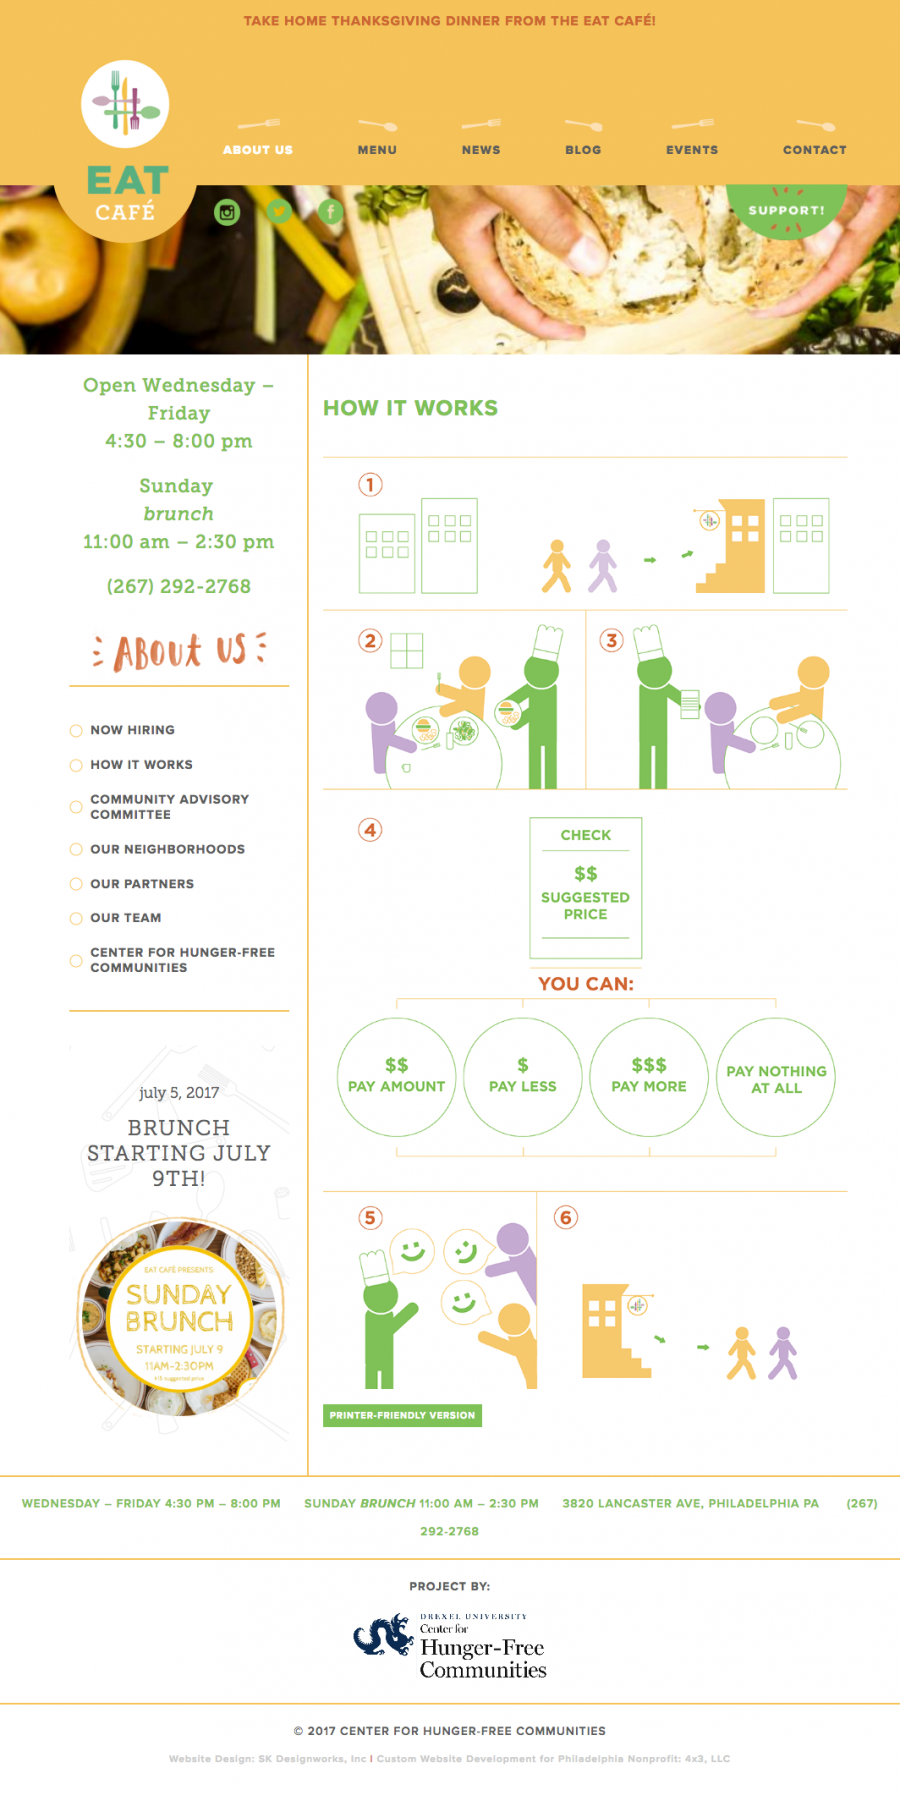 Educational Infographic about restaurant payment system